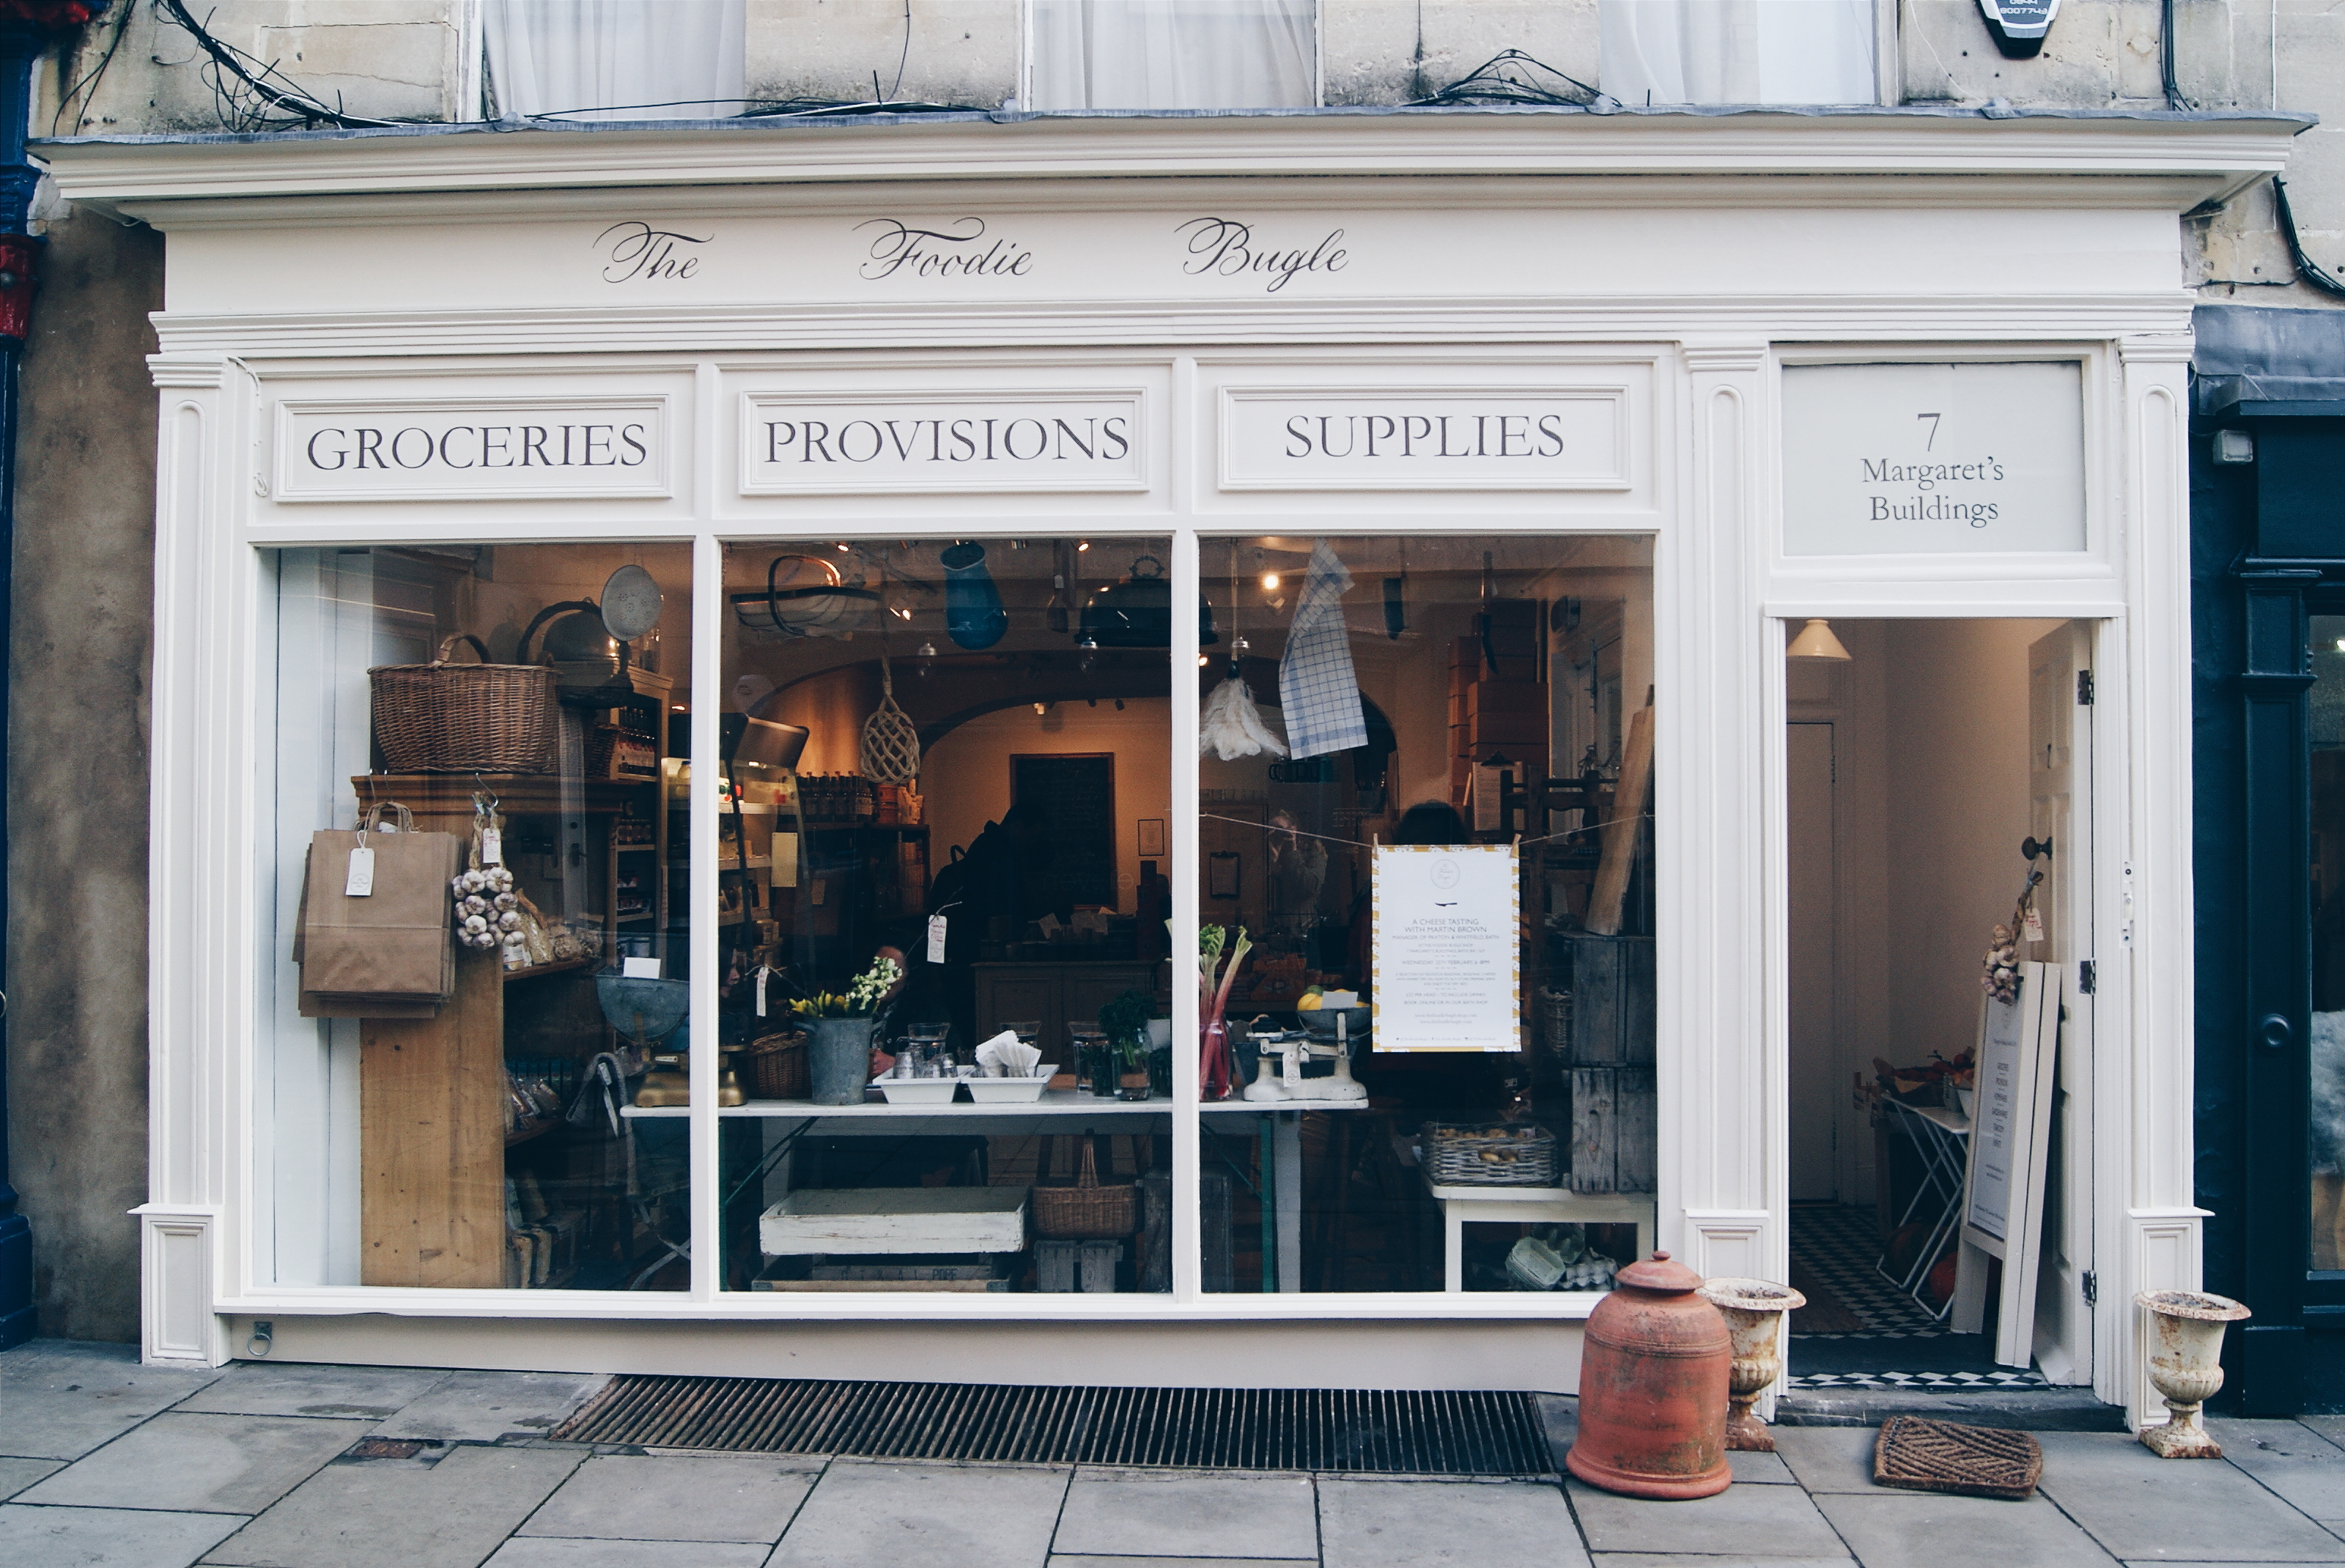 Shopping in Bath: Interview with The Foodie Bugle - | GKM | GKM